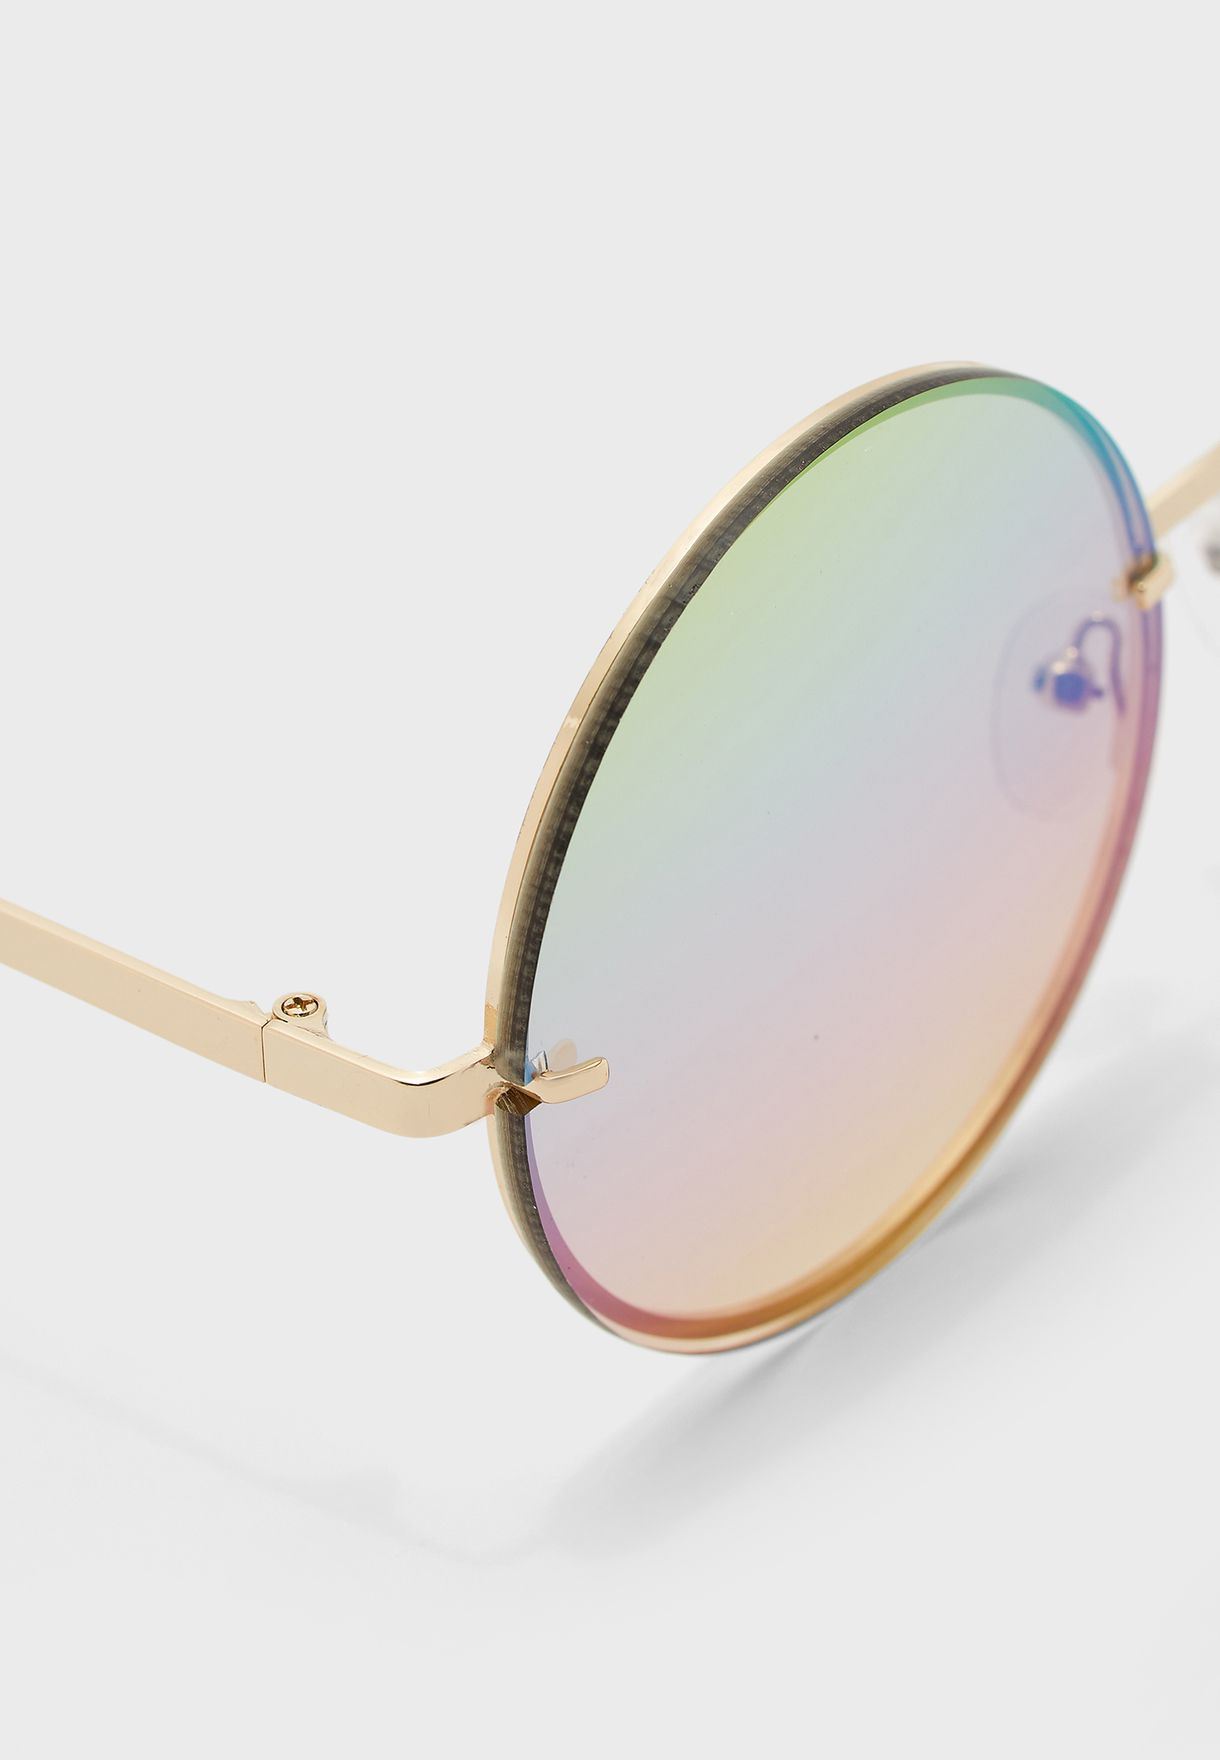 Weeksrise Round Sunglasses